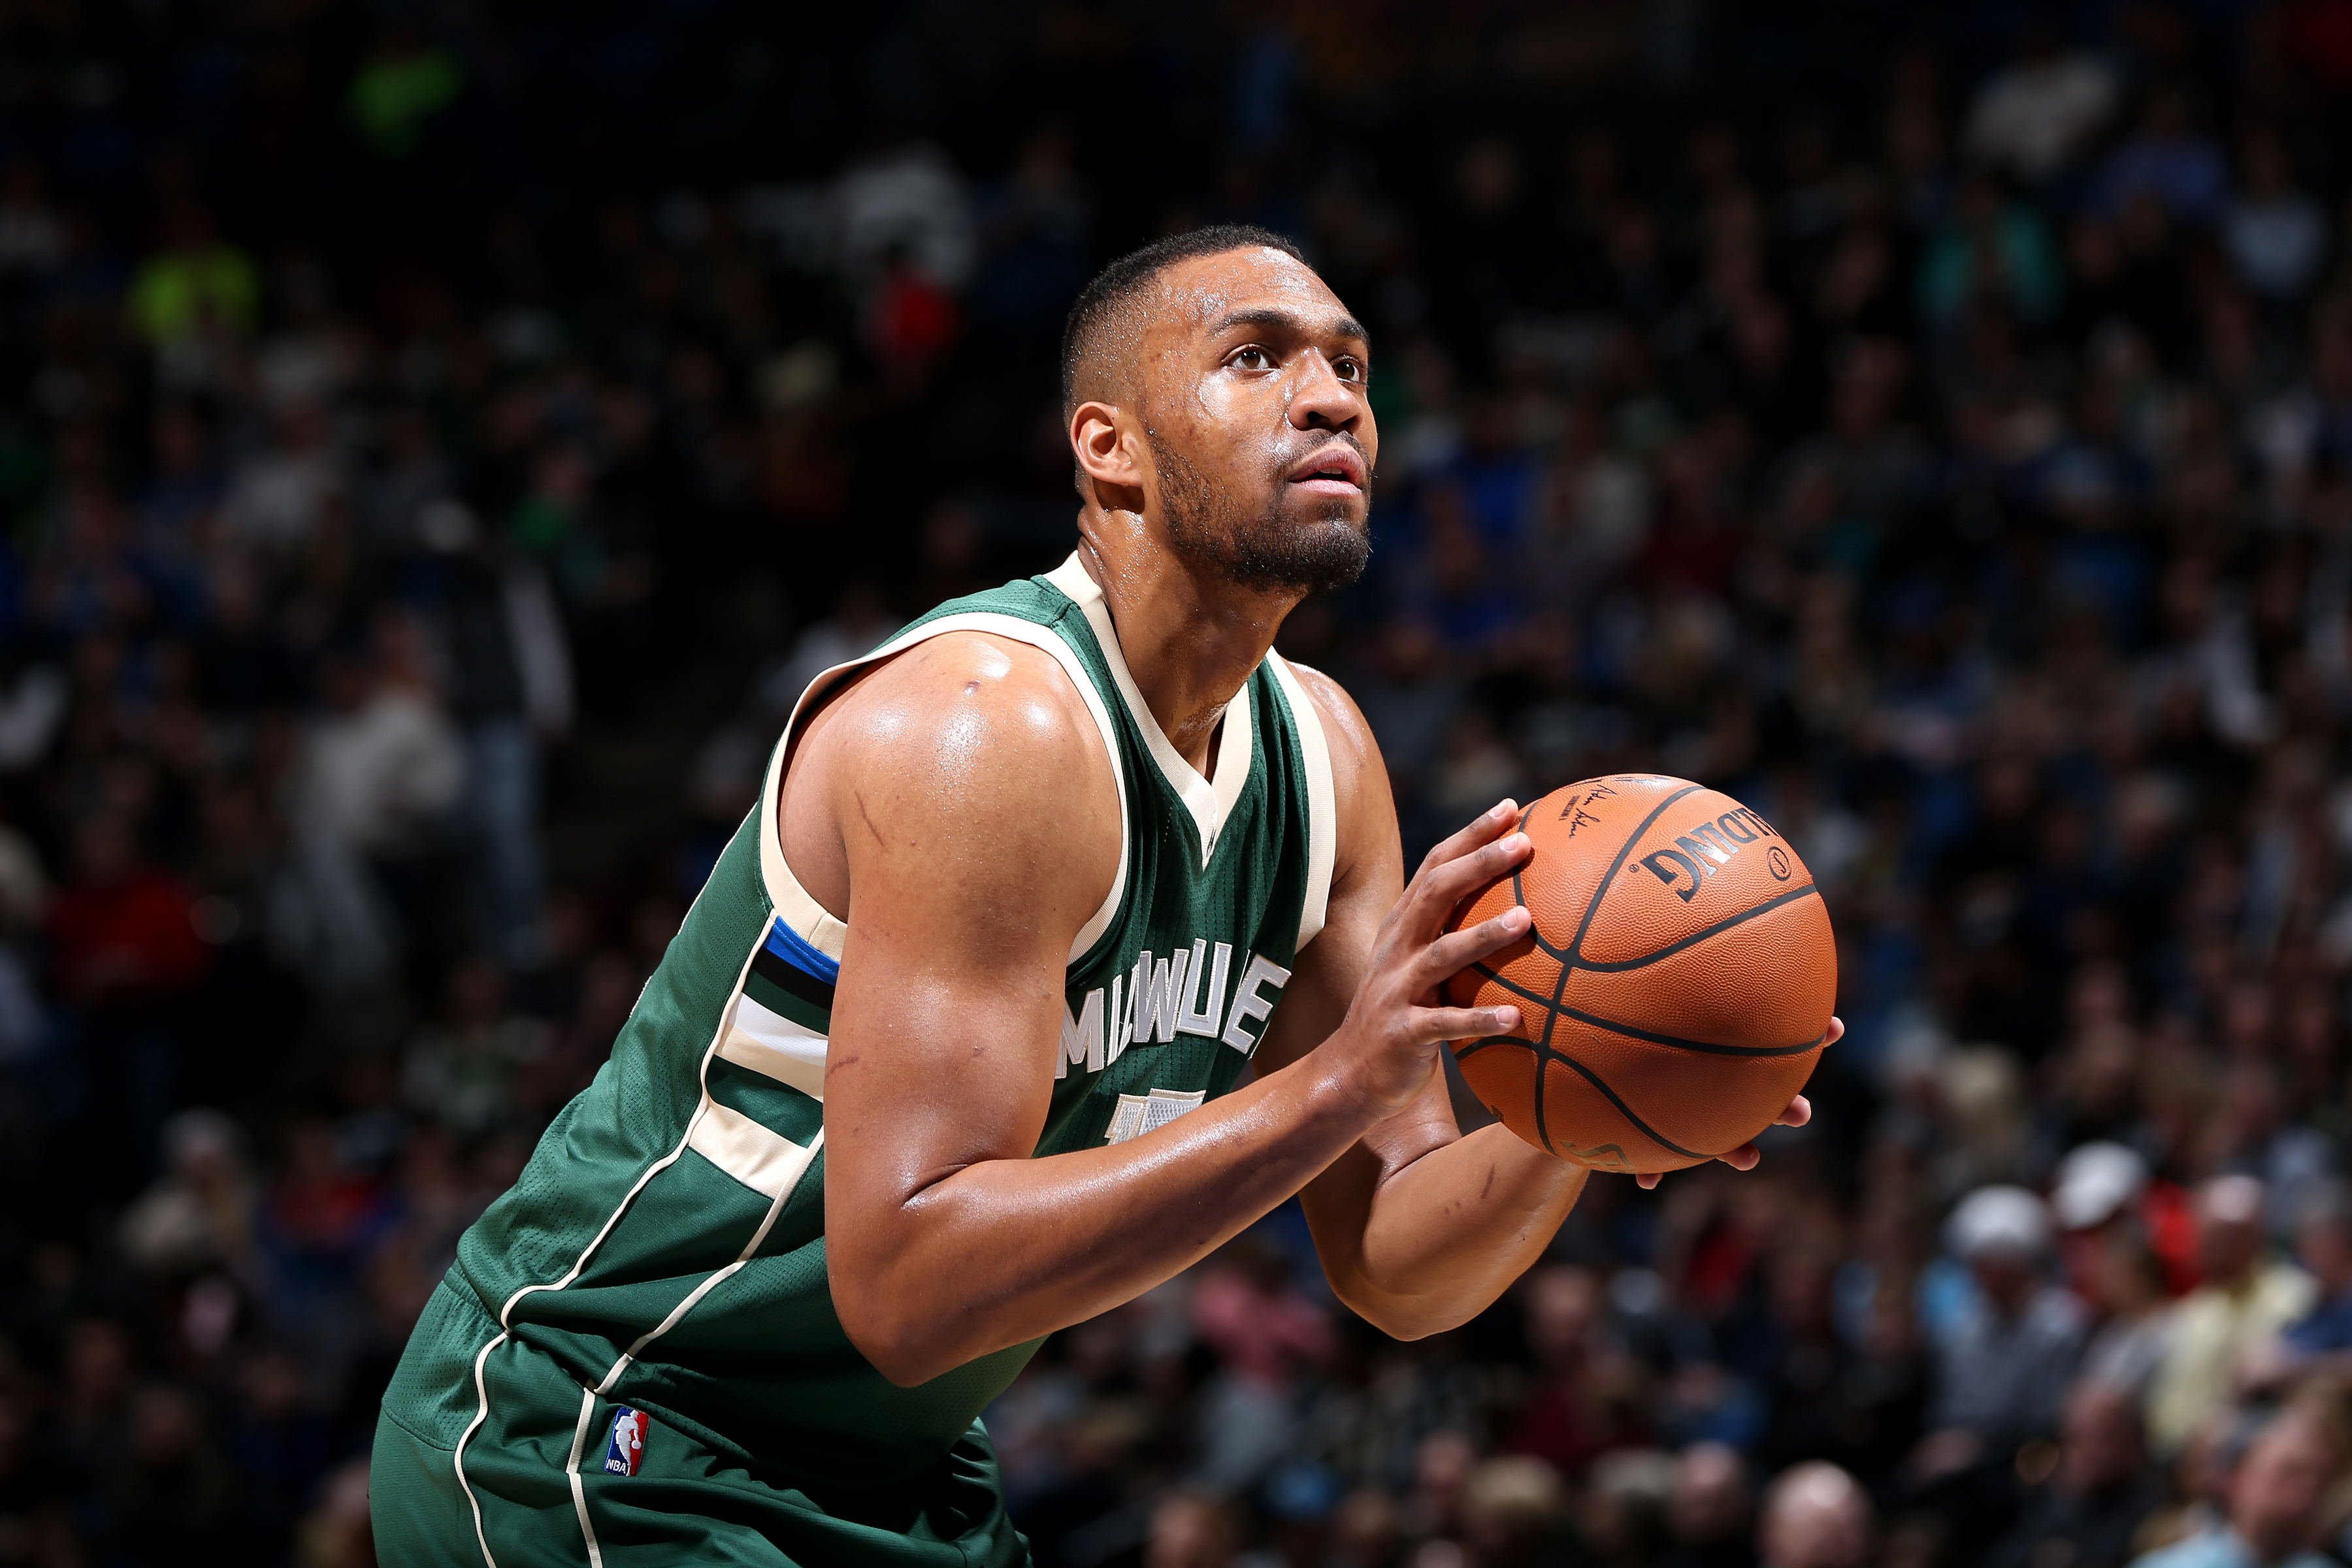 99f842e0d Jabari Parker s winning ways can be traced back to his high school days  during which he helped his school clinch 4 consecutive championship titles  in the ...